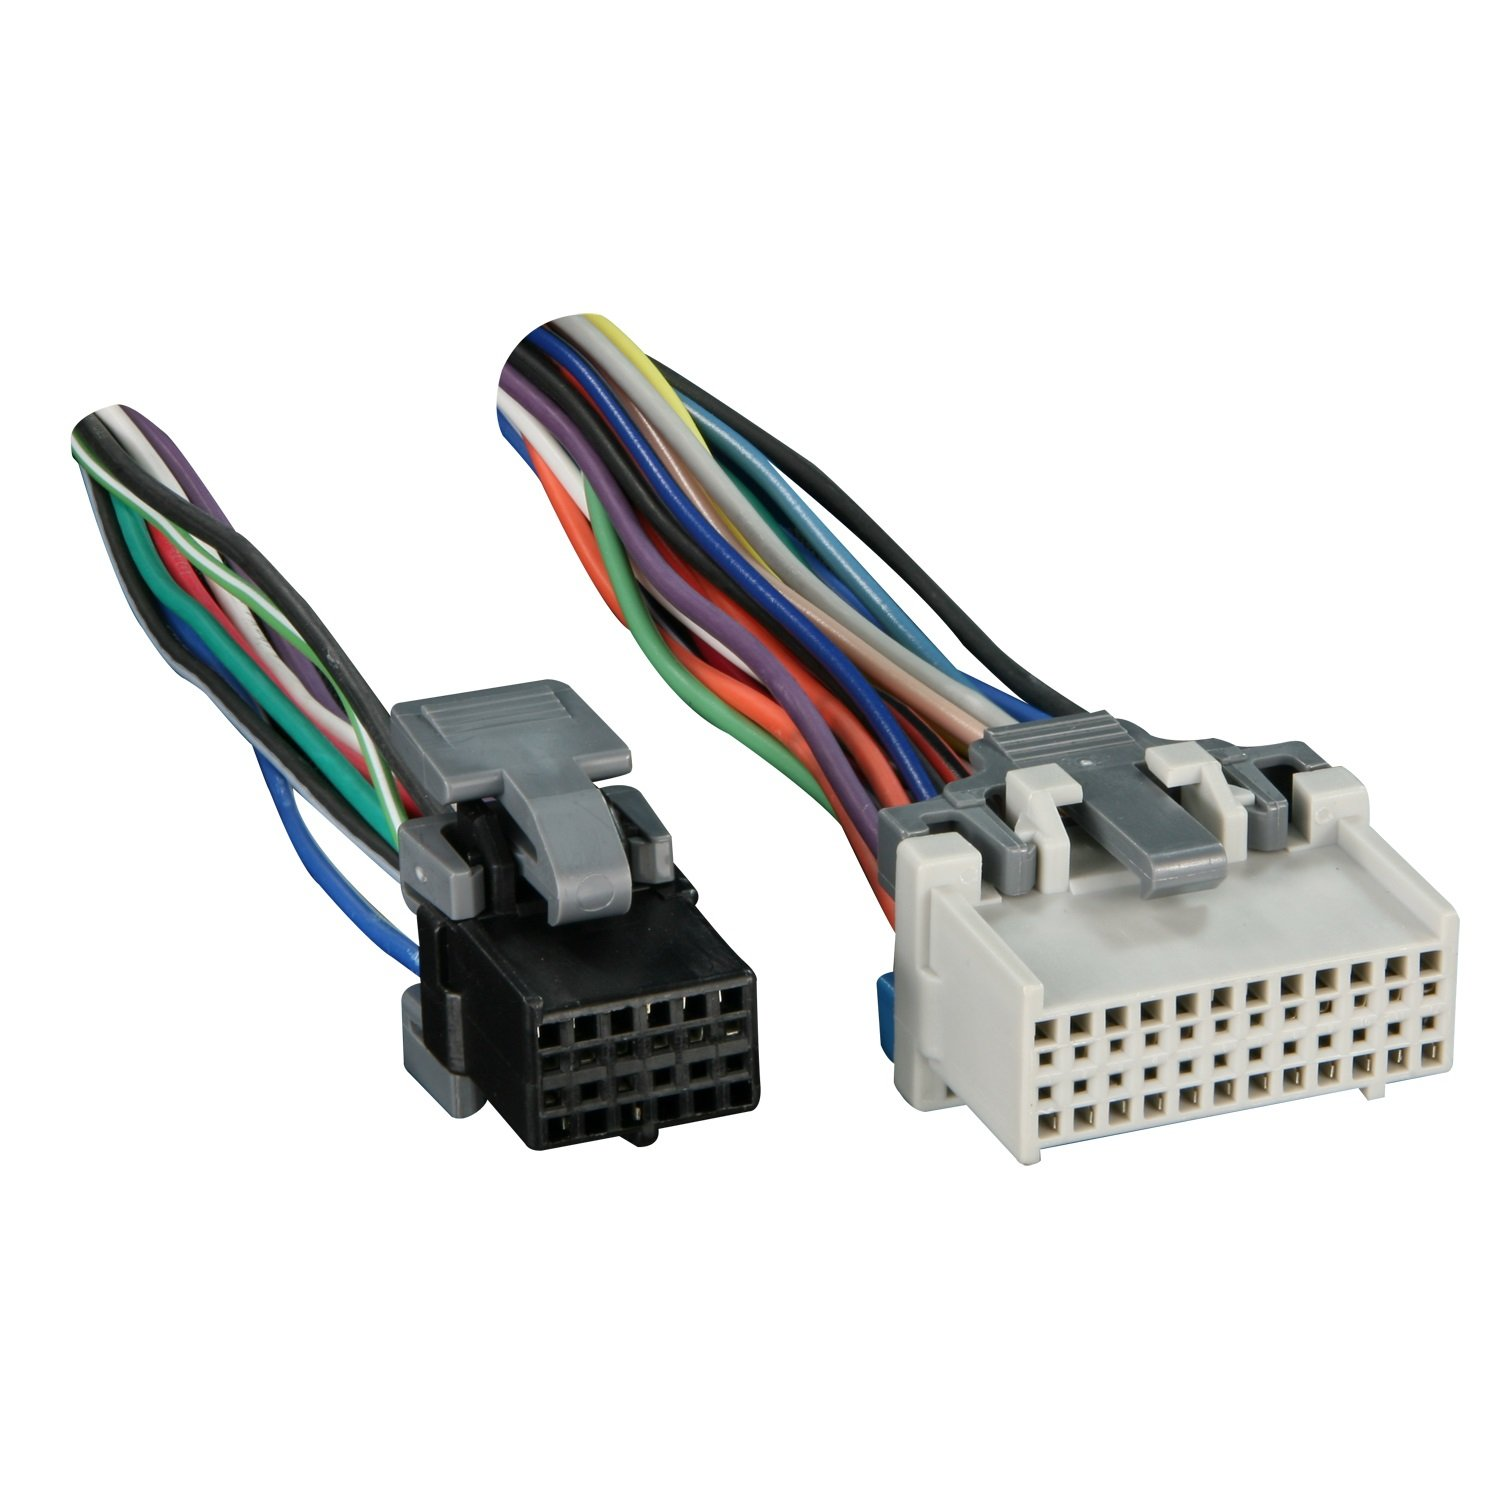 711log4bdML._SL1500_ amazon com metra turbowires 71 2003 1 wiring harness car electronics GM Wiring Color Codes at bayanpartner.co